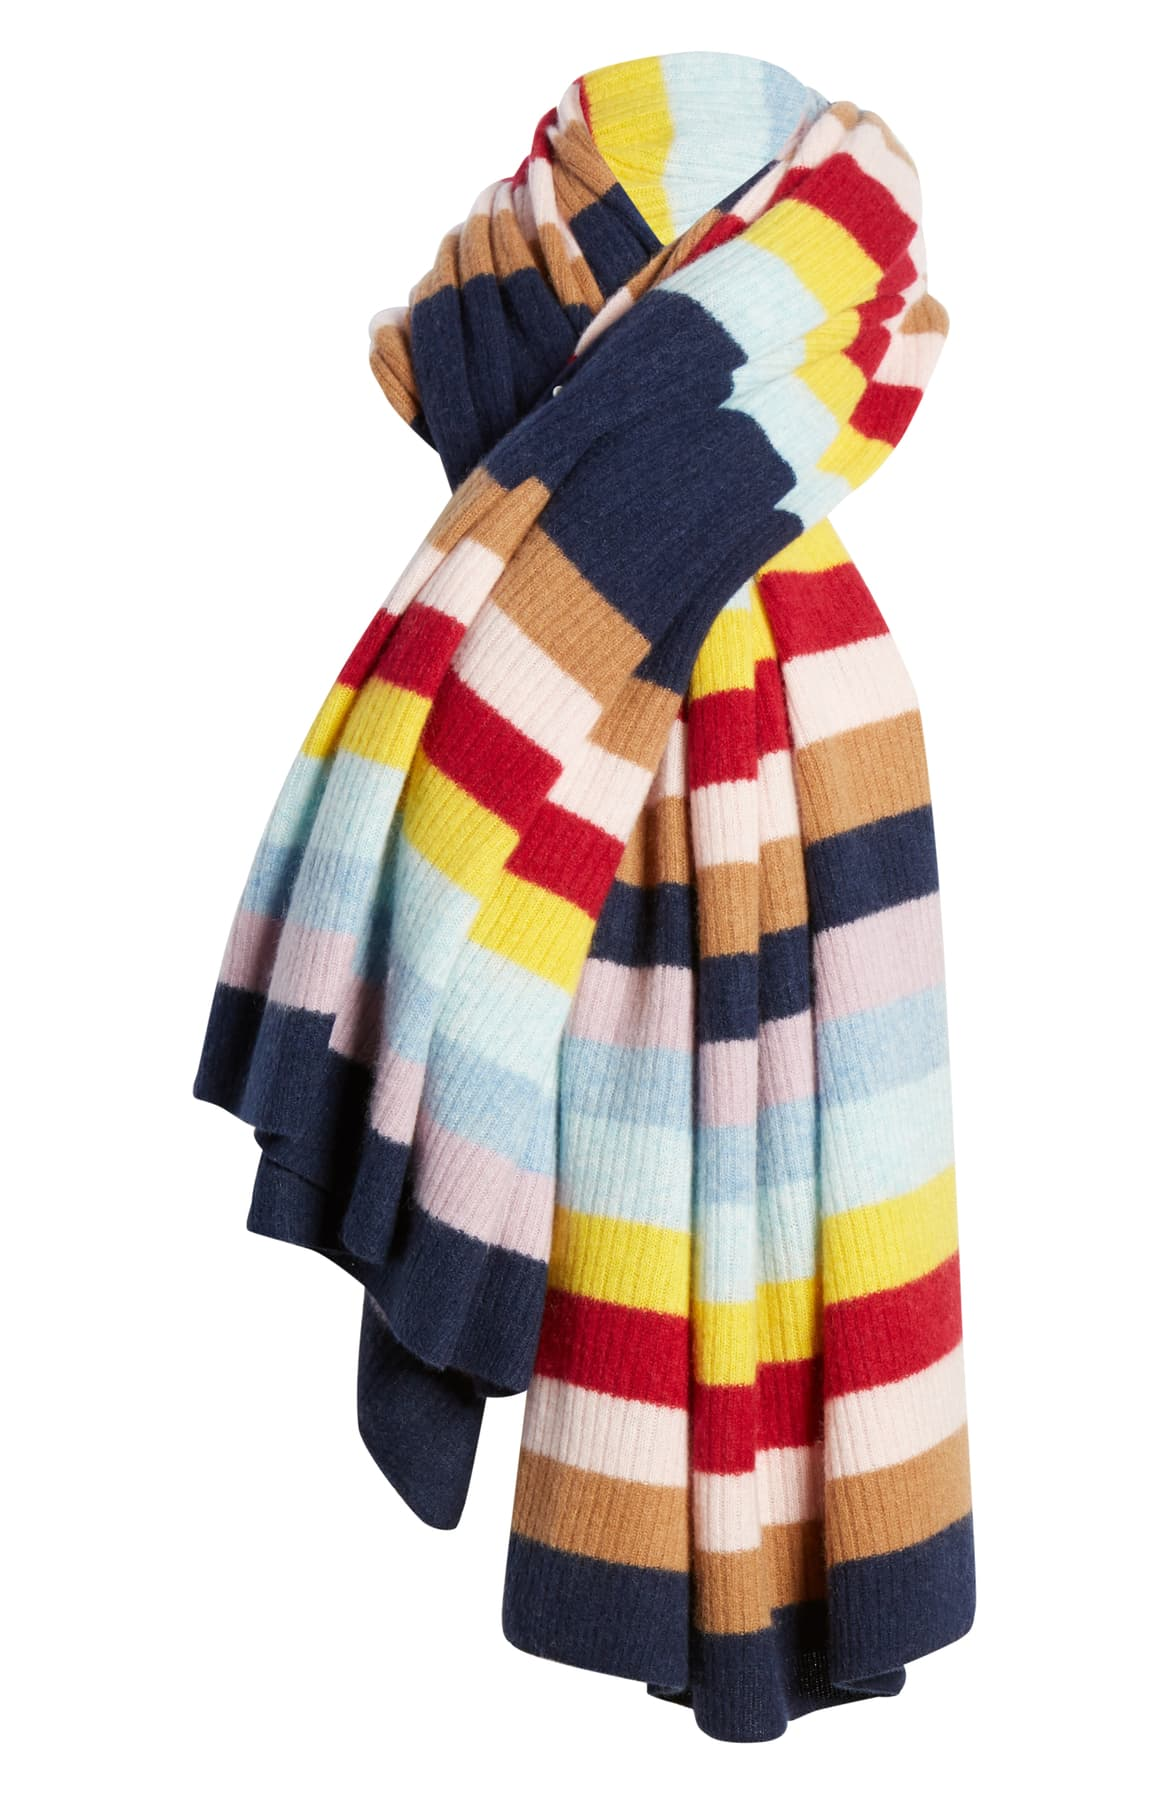 "<p>The perfect combo of plush comfort and influencer Blair Eadie's playful style, this large ribbed scarf is made of pure cashmere and patterned in bold stripes. $199.{&nbsp;}<a  href=""https://shop.nordstrom.com/s/halogen-x-atlantic-pacific-stripe-cashmere-blanket-scarf-nordstrom-exclusive/5324039/full?origin=keywordsearch-personalizedsort&breadcrumb=Home%2FAll%20Results&color=multi%20combo"" target=""_blank"" title=""https://shop.nordstrom.com/s/halogen-x-atlantic-pacific-stripe-cashmere-blanket-scarf-nordstrom-exclusive/5324039/full?origin=keywordsearch-personalizedsort&breadcrumb=Home%2FAll%20Results&color=multi%20combo"">Shop it{&nbsp;}</a>(Image: Nordstrom){&nbsp;}</p>"